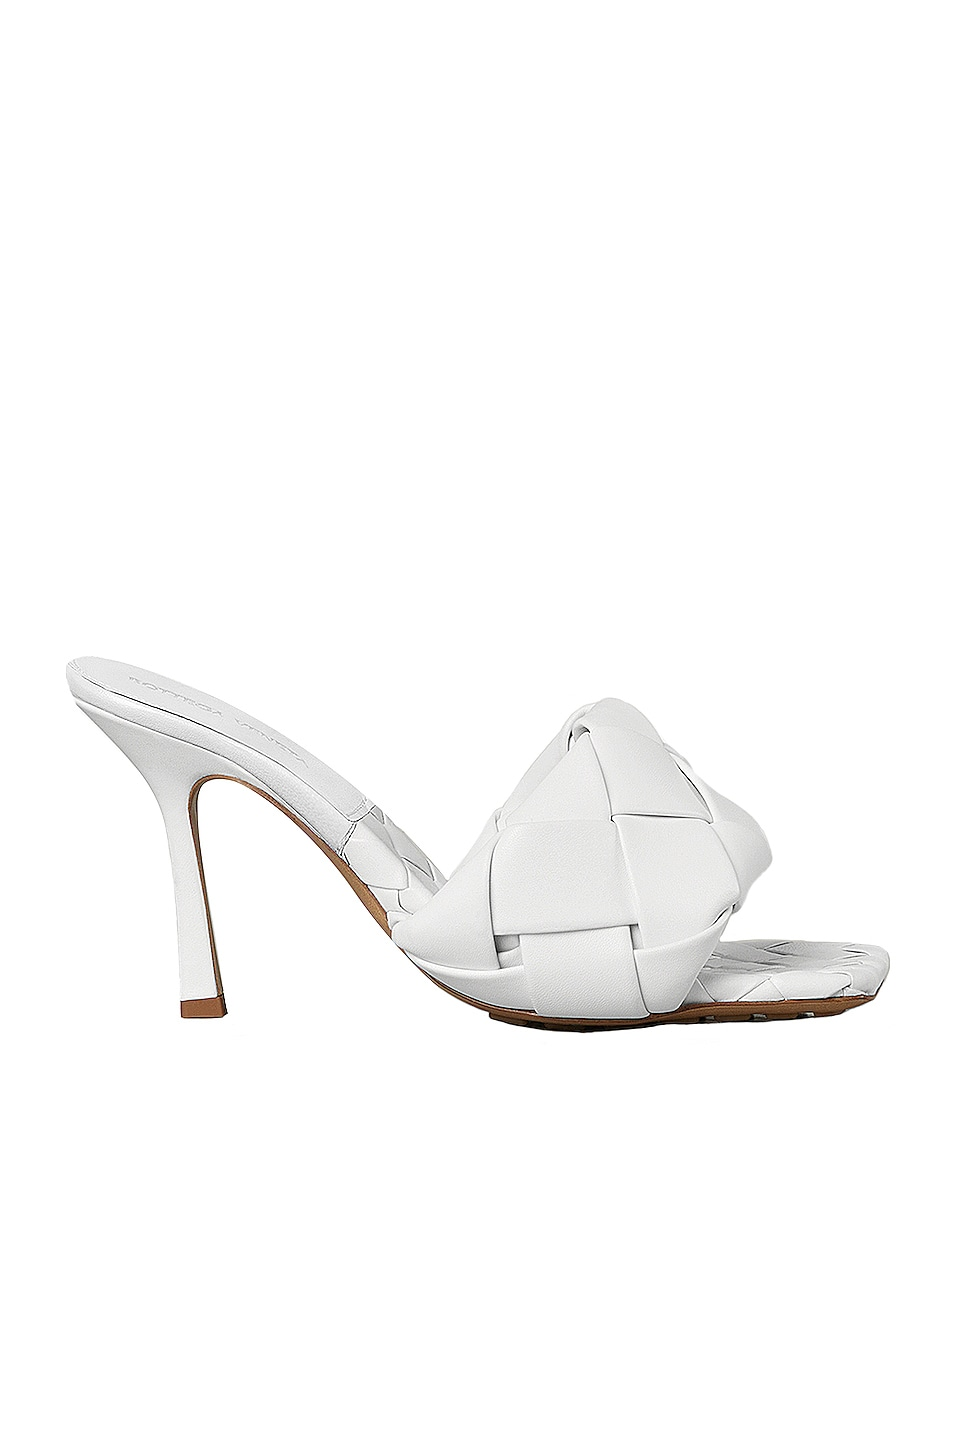 Image 1 of Bottega Veneta Leather Woven Sandals in Optic White